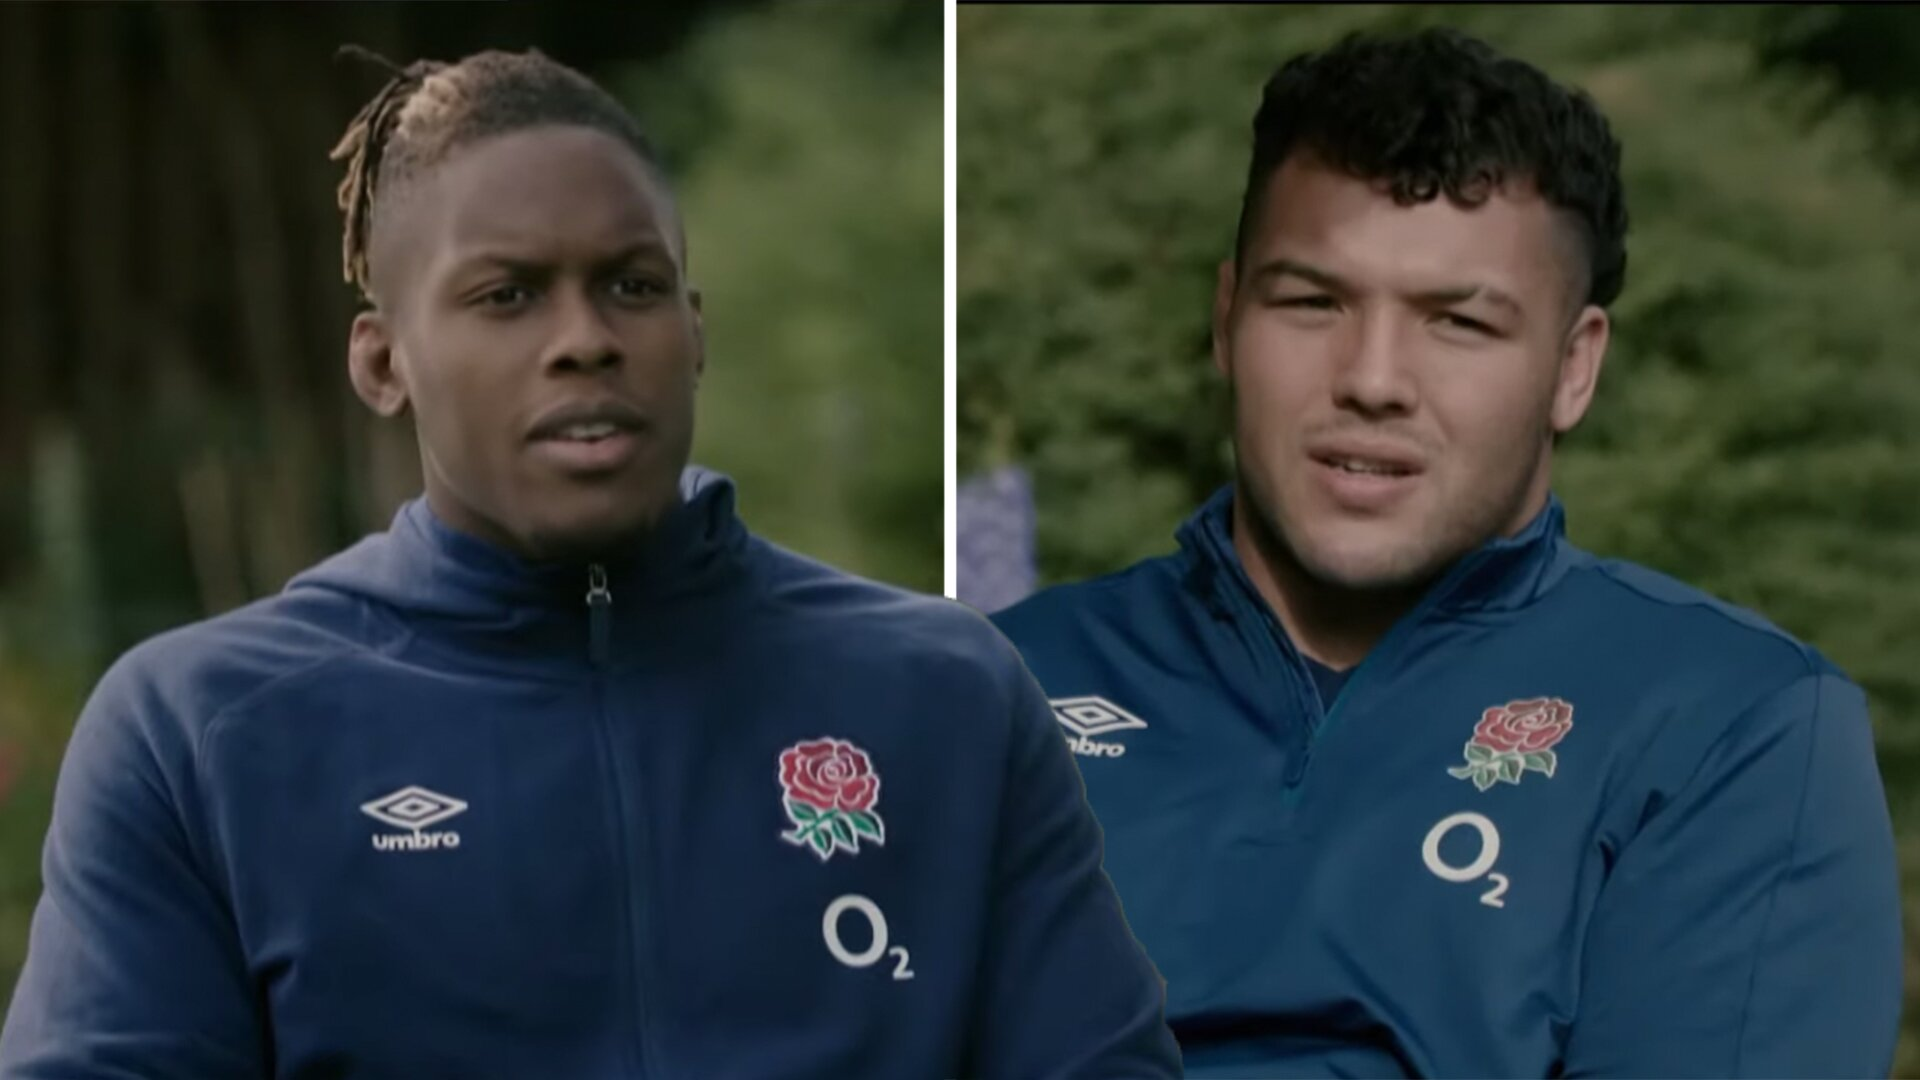 England rugby team speak out on racism in rugby in explosive new video